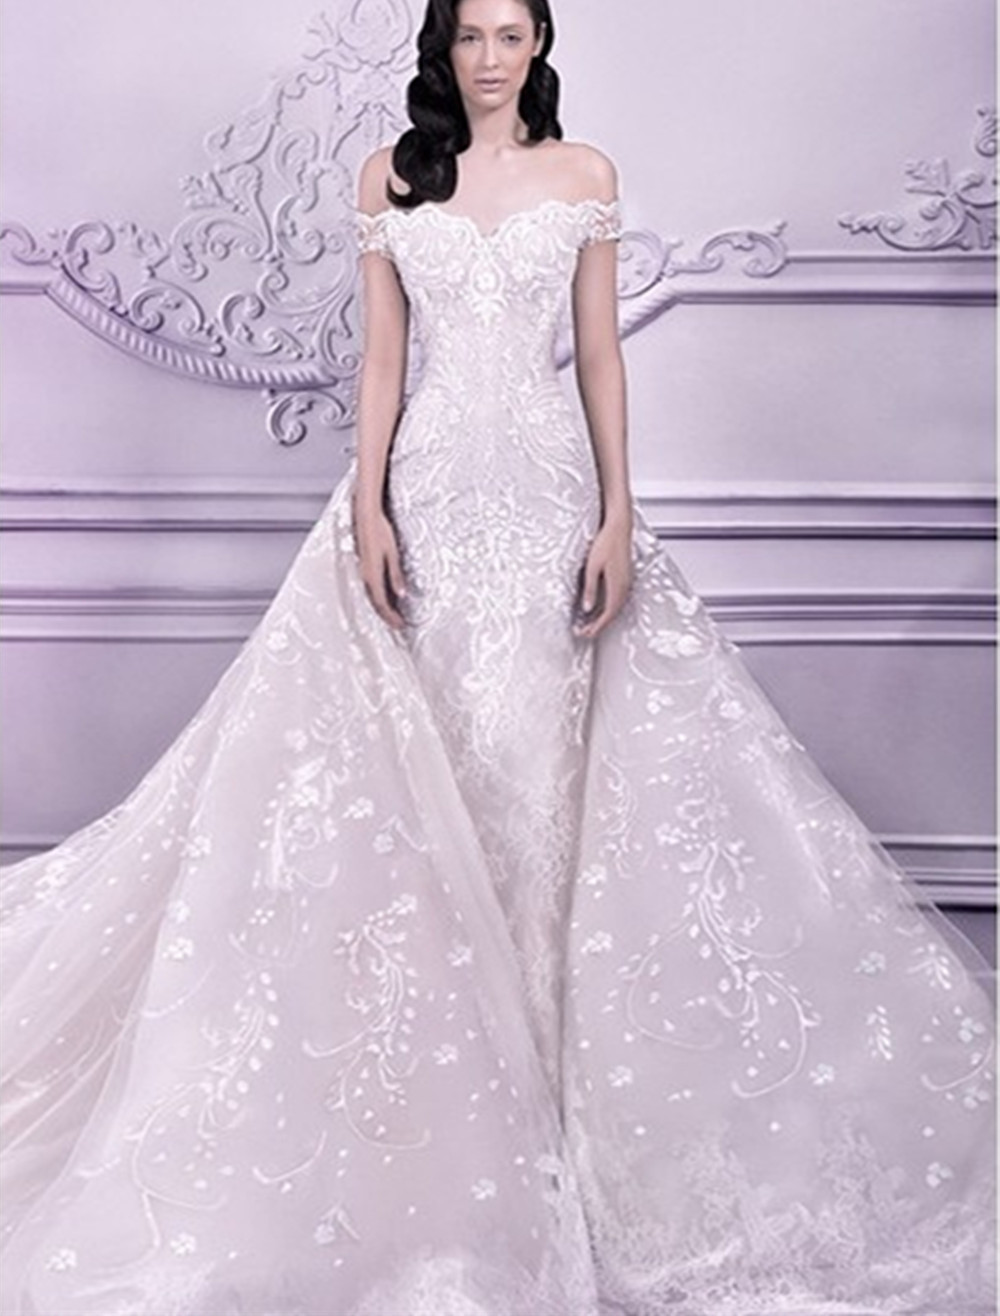 High Quality Wholesale expensive wedding dress from China ...